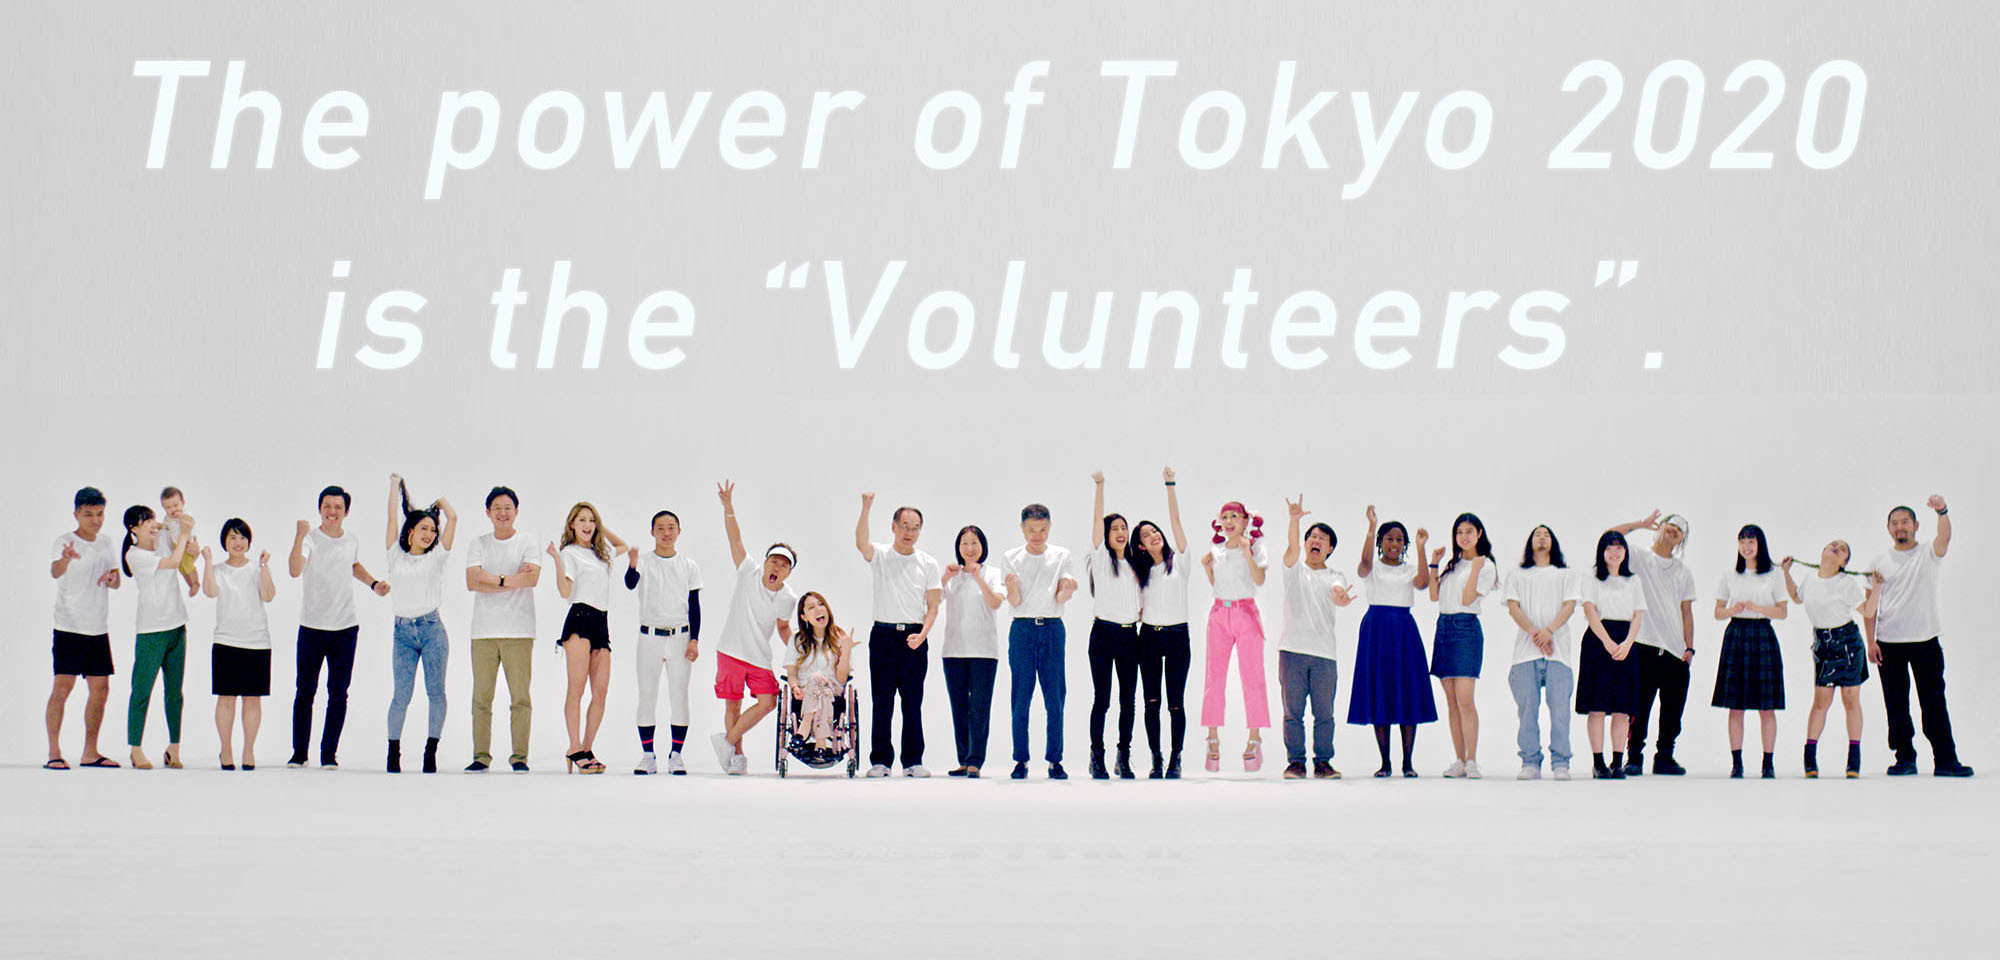 Organisers of Tokyo 2020 have announced a shortlist for the official nickname for the event's volunteers ©Tokyo 2020